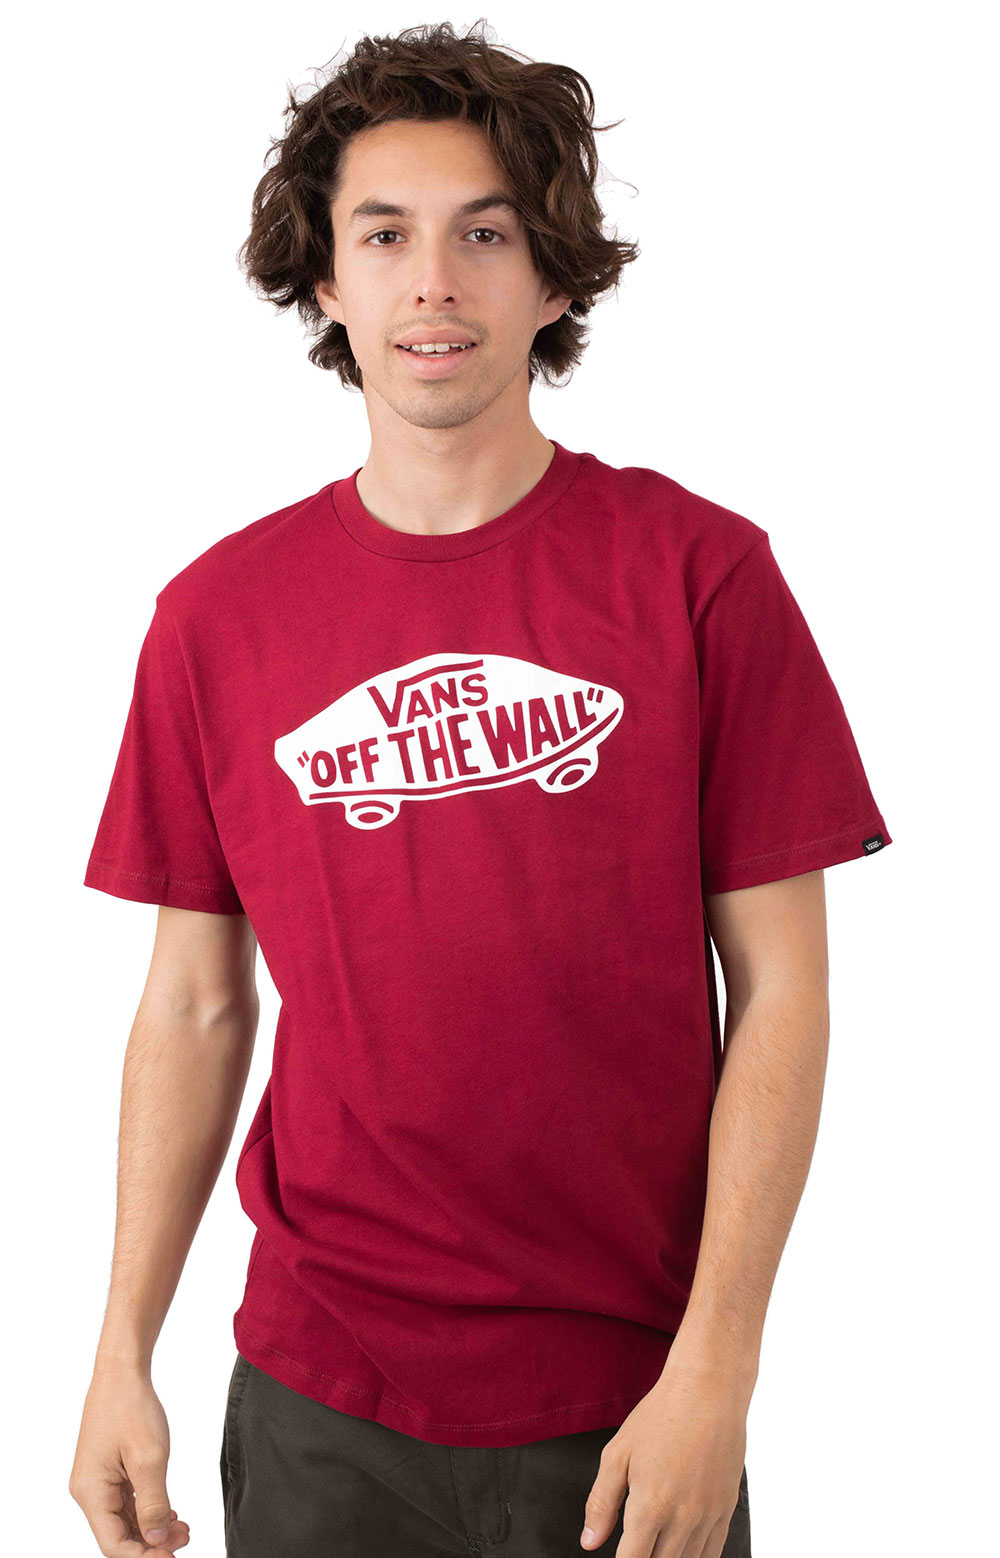 Vans OTW T-Shirt - Rhumba Red